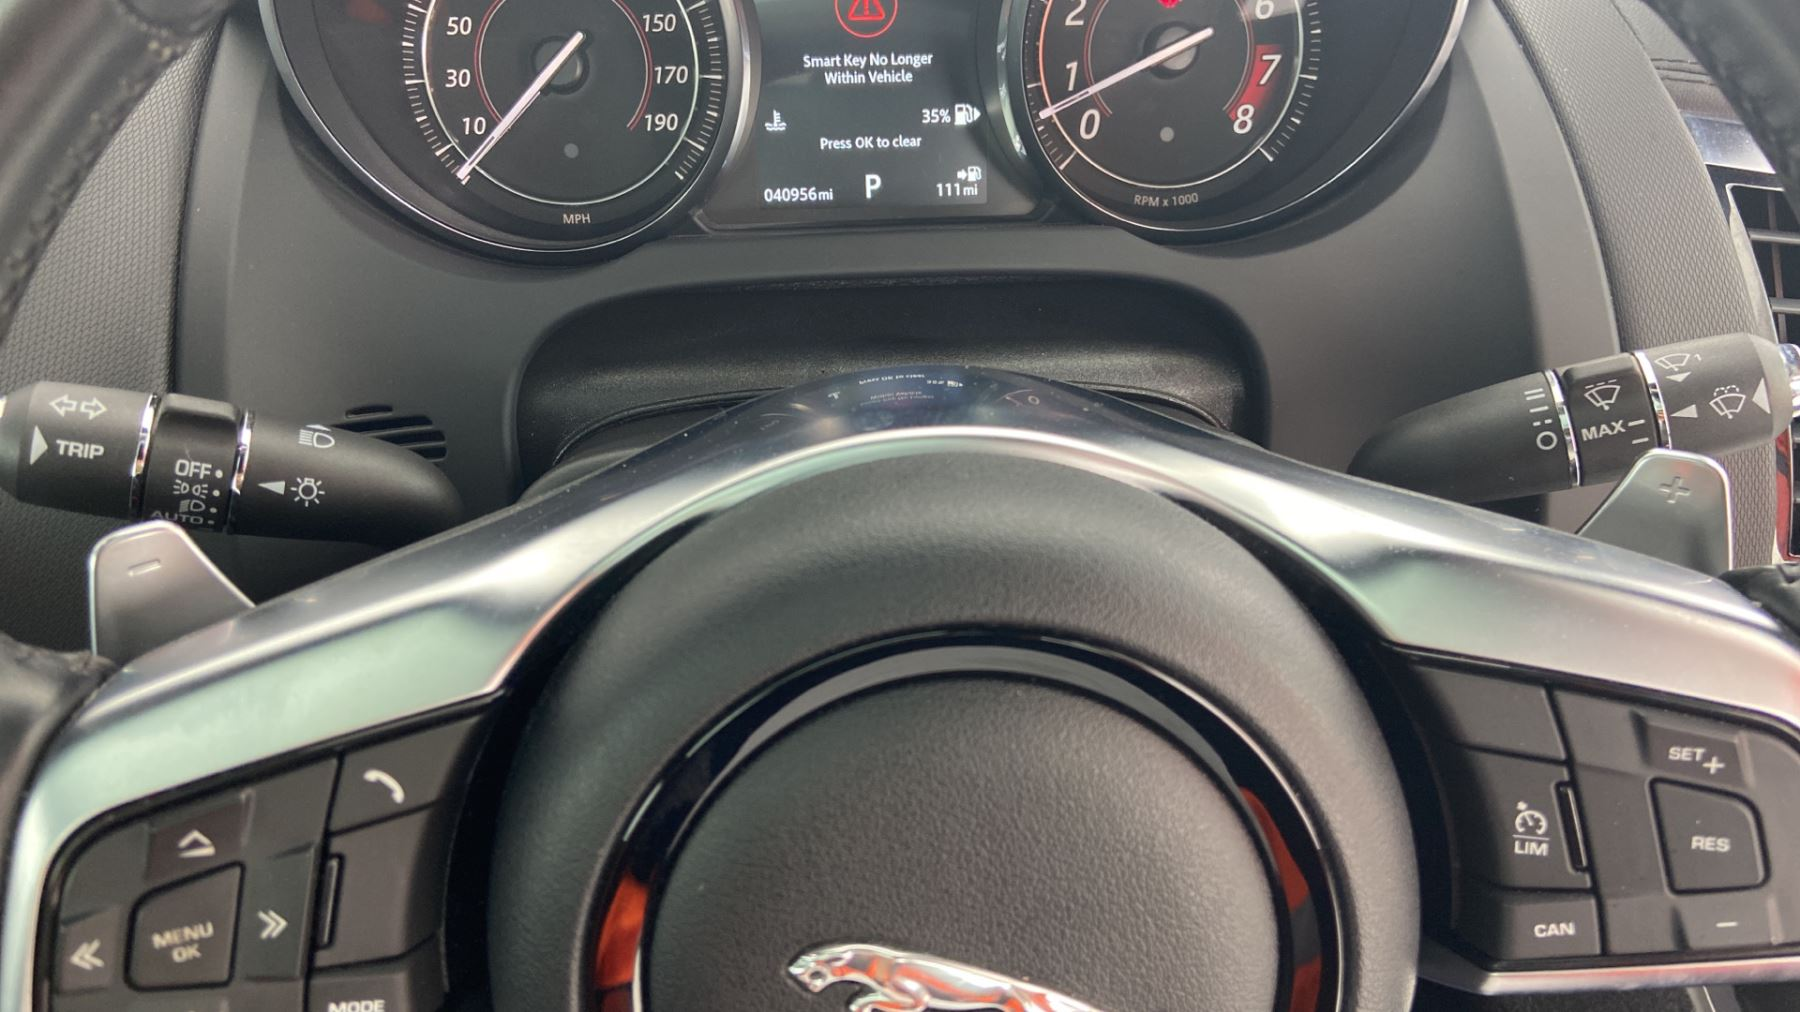 Jaguar F-TYPE 3.0 Supercharged V6 R-Dynamic with Panoramic Sunroof and Meridian Surround Sound image 29